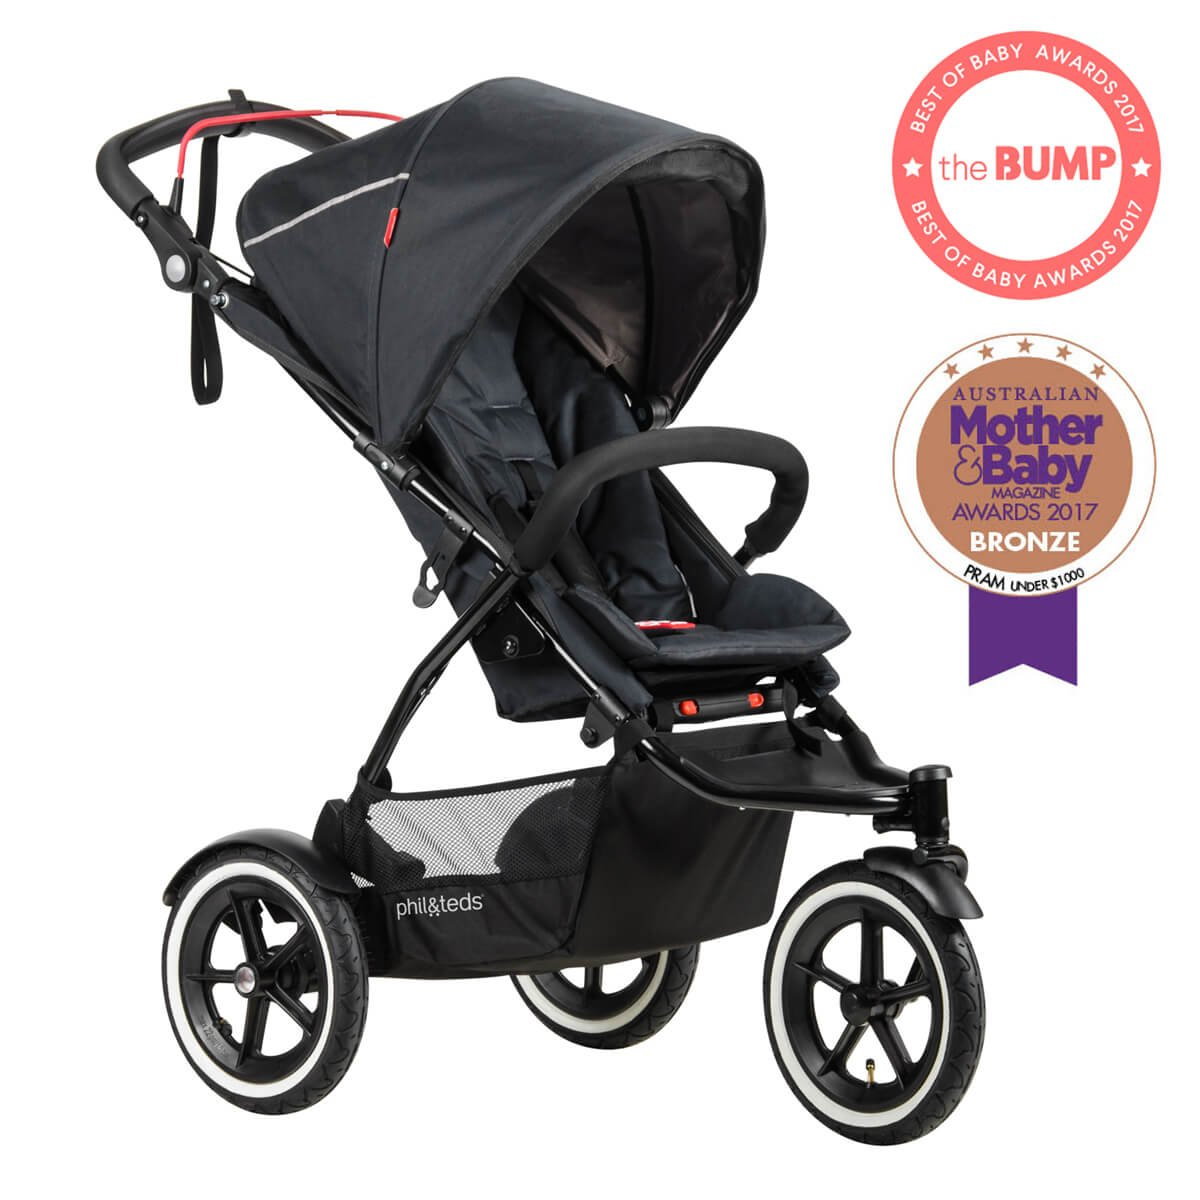 phil&teds Sport All Terrain Inline Stroller with Double Kit, Black - Auto Stop Safety Brake - All Terrain Air Tires - Adapts to Take One or Two Children - Travel System Ready with One or Two Carseats by phil&teds